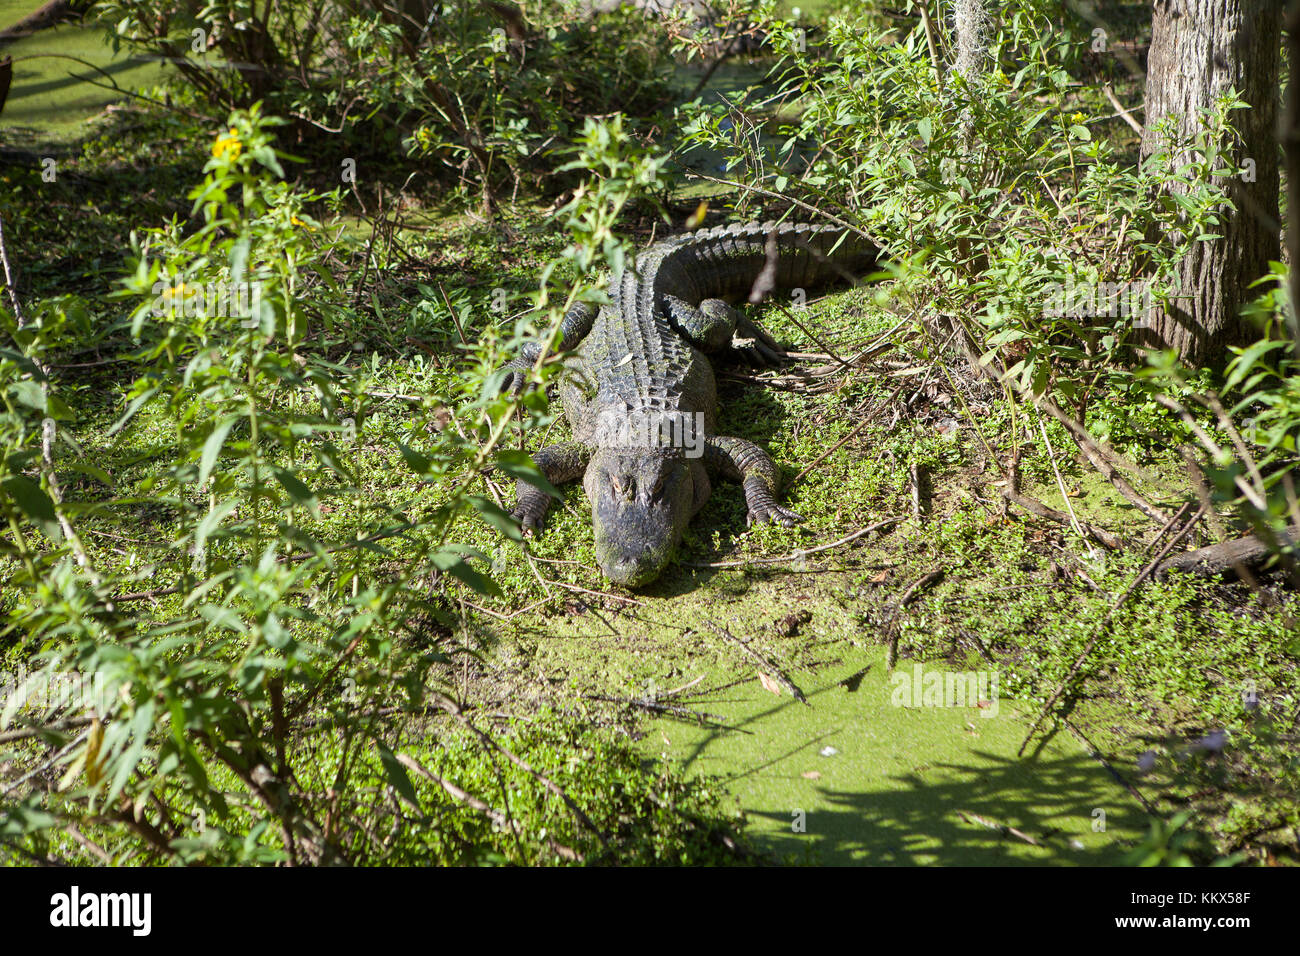 Alligators at Jungle Adventures Wildlife Park,Christmas, Florida - Stock Image